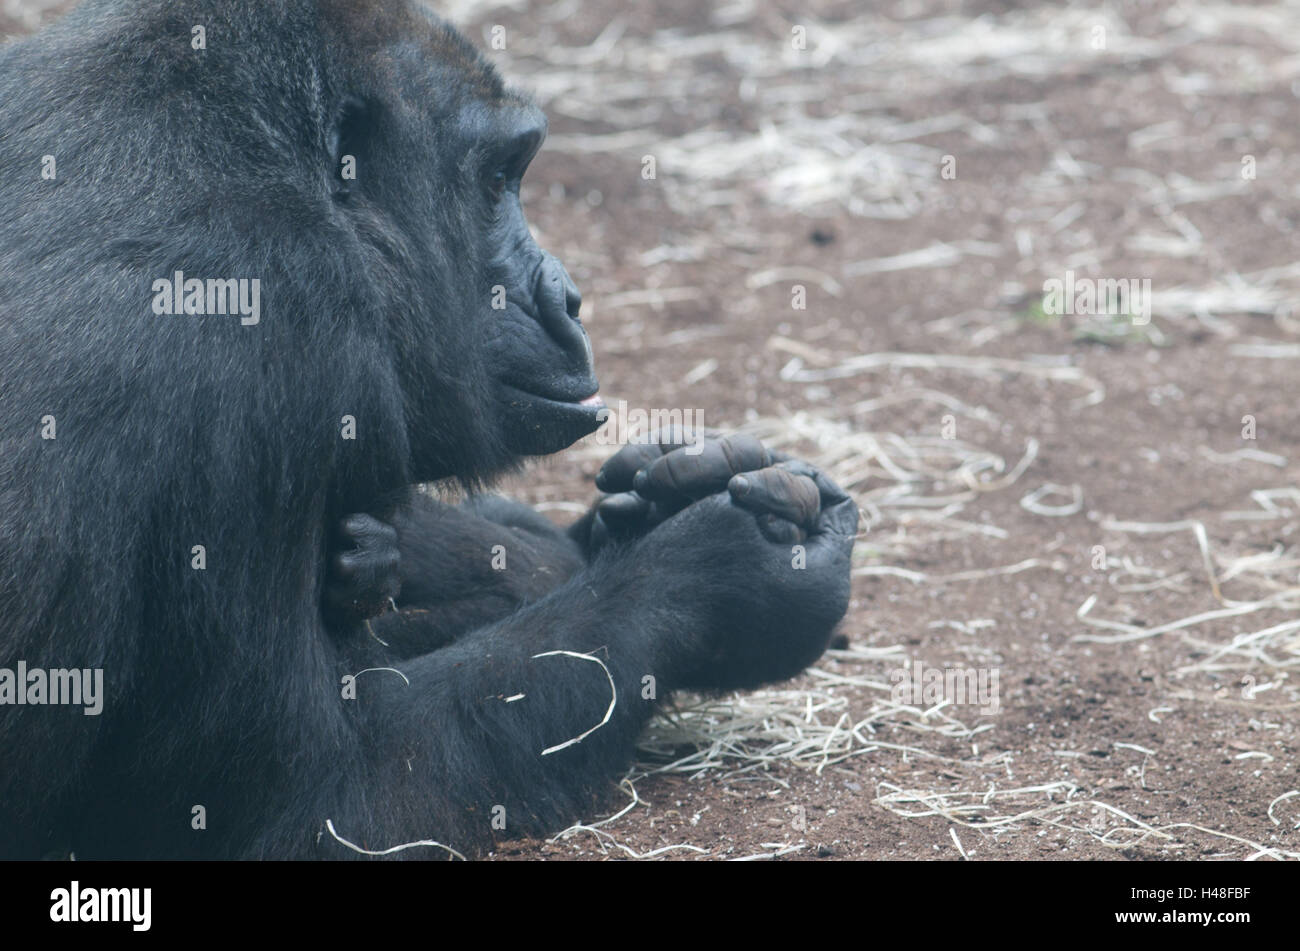 Gorillas, mother animal, young animal, hand hold, medium close-up, detail, - Stock Image